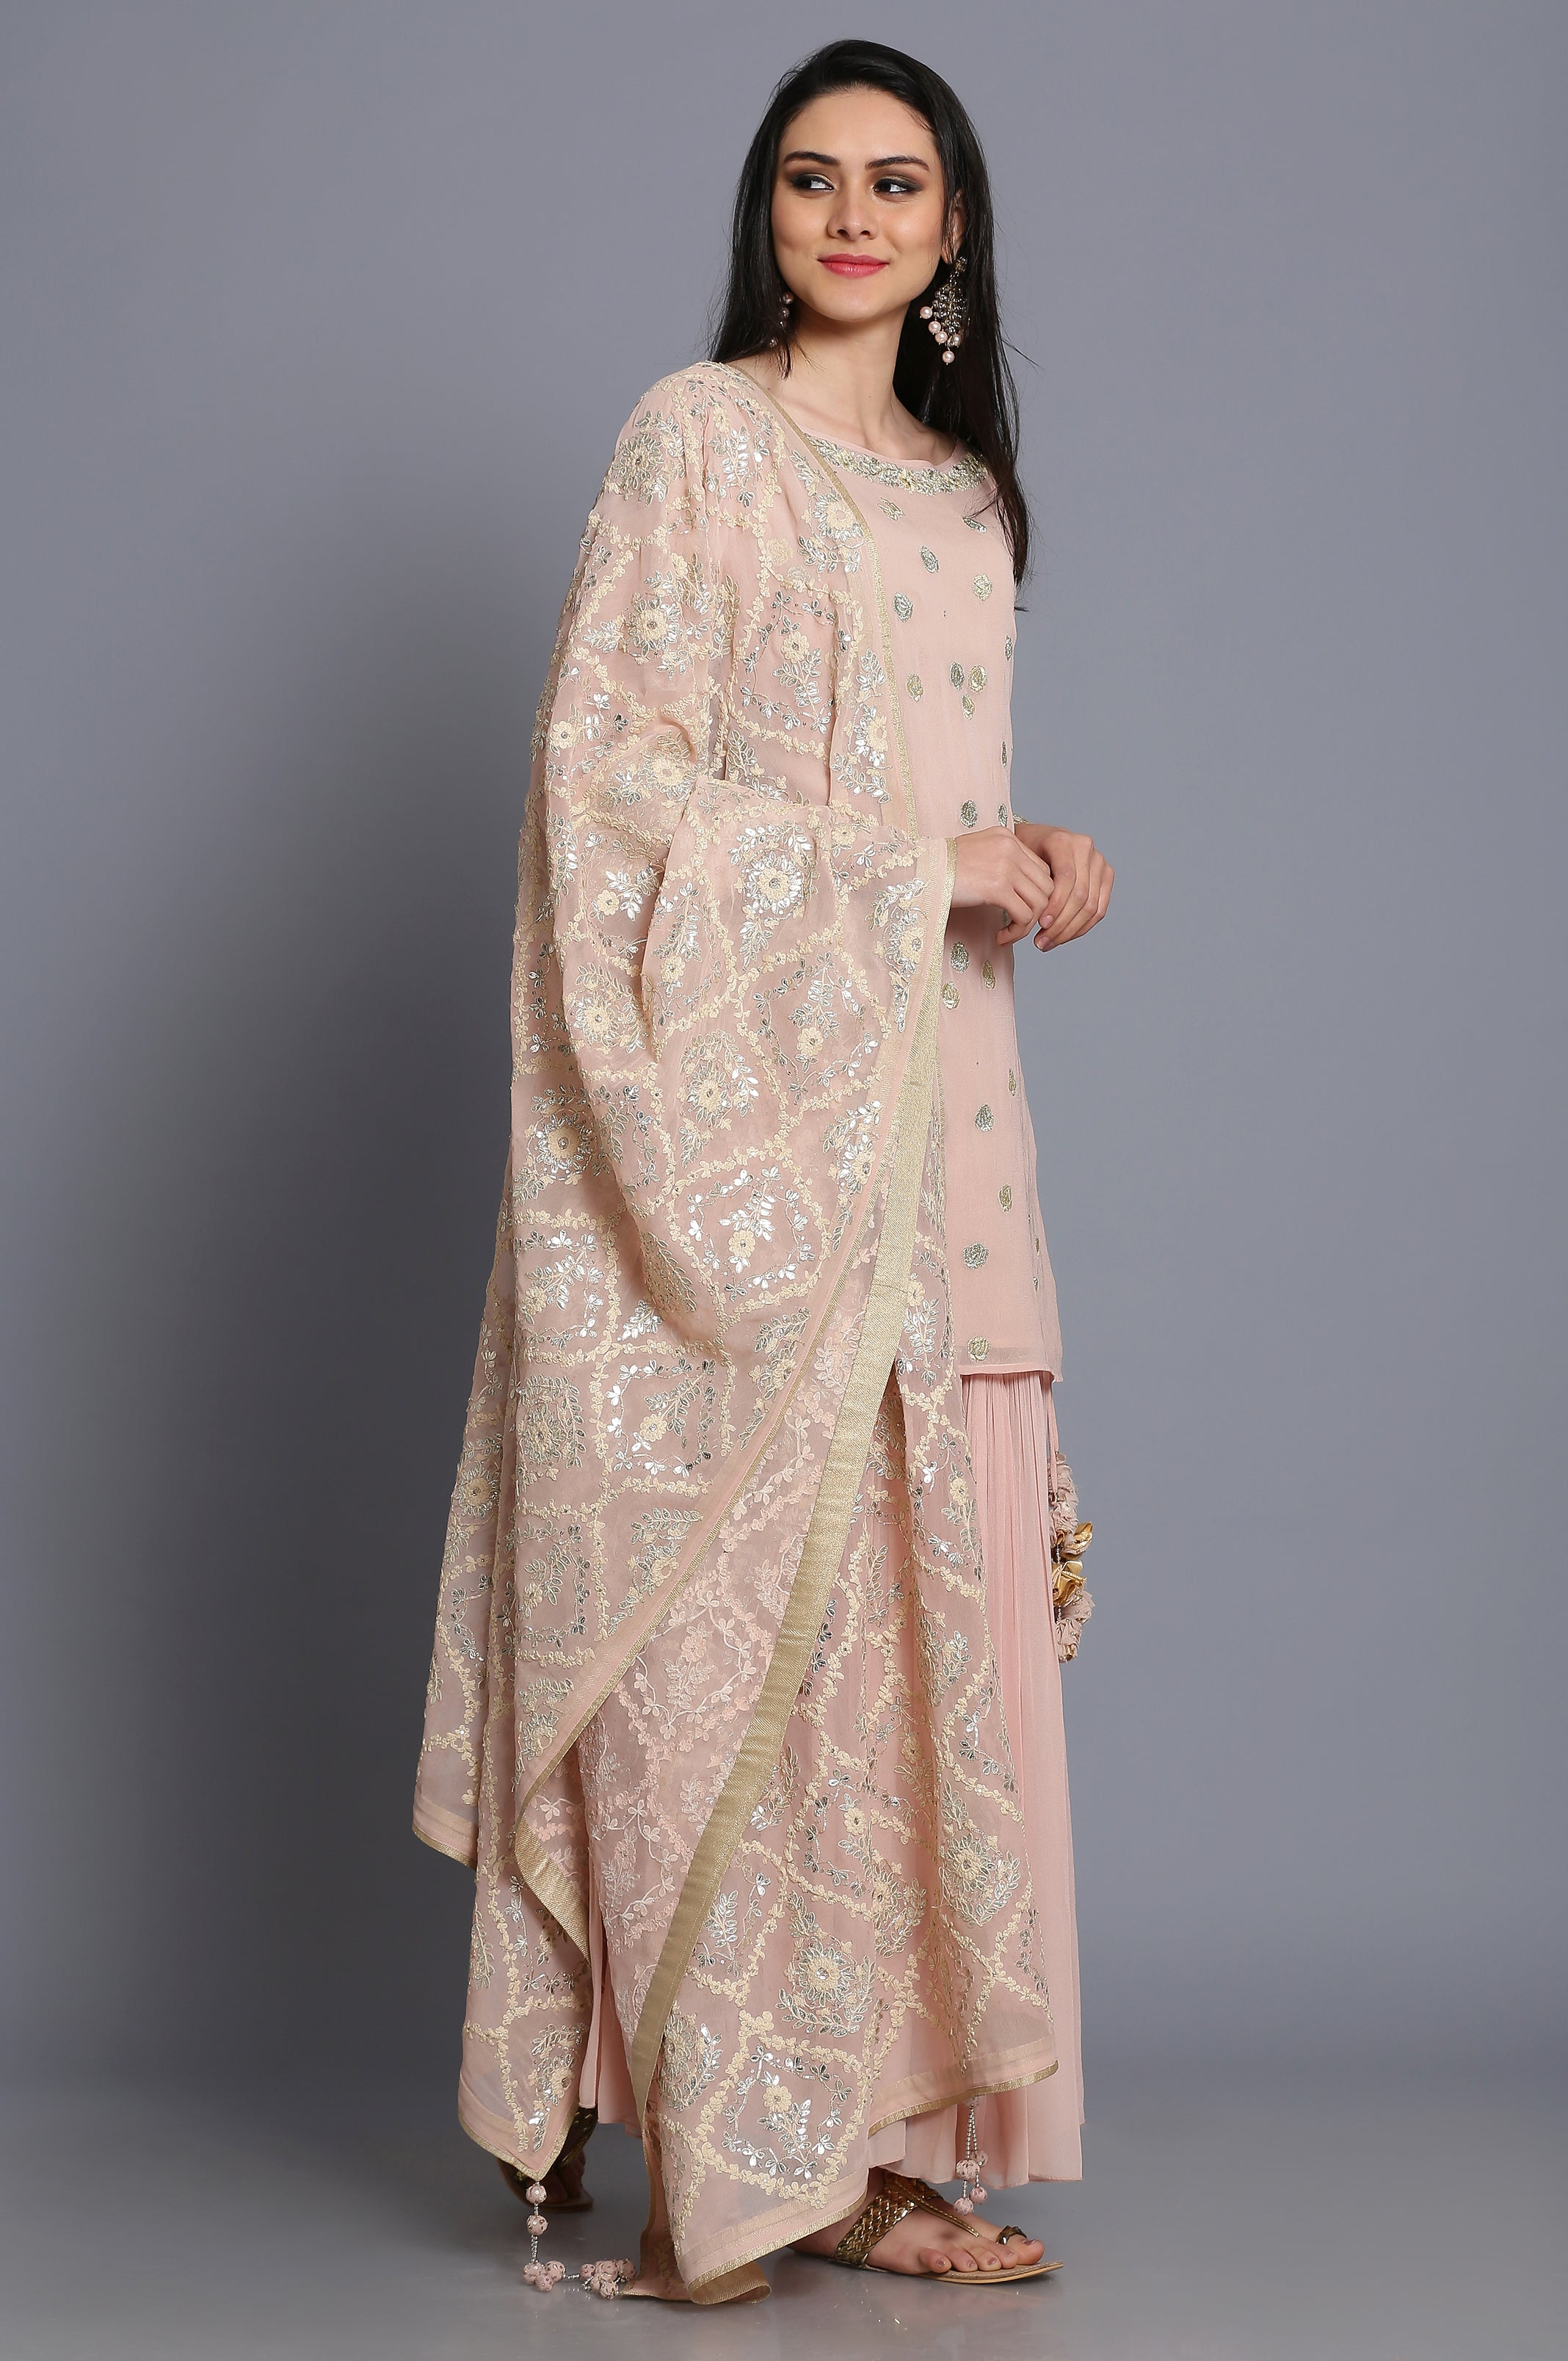 Georgette short tunic with skirt and heavy dupatta